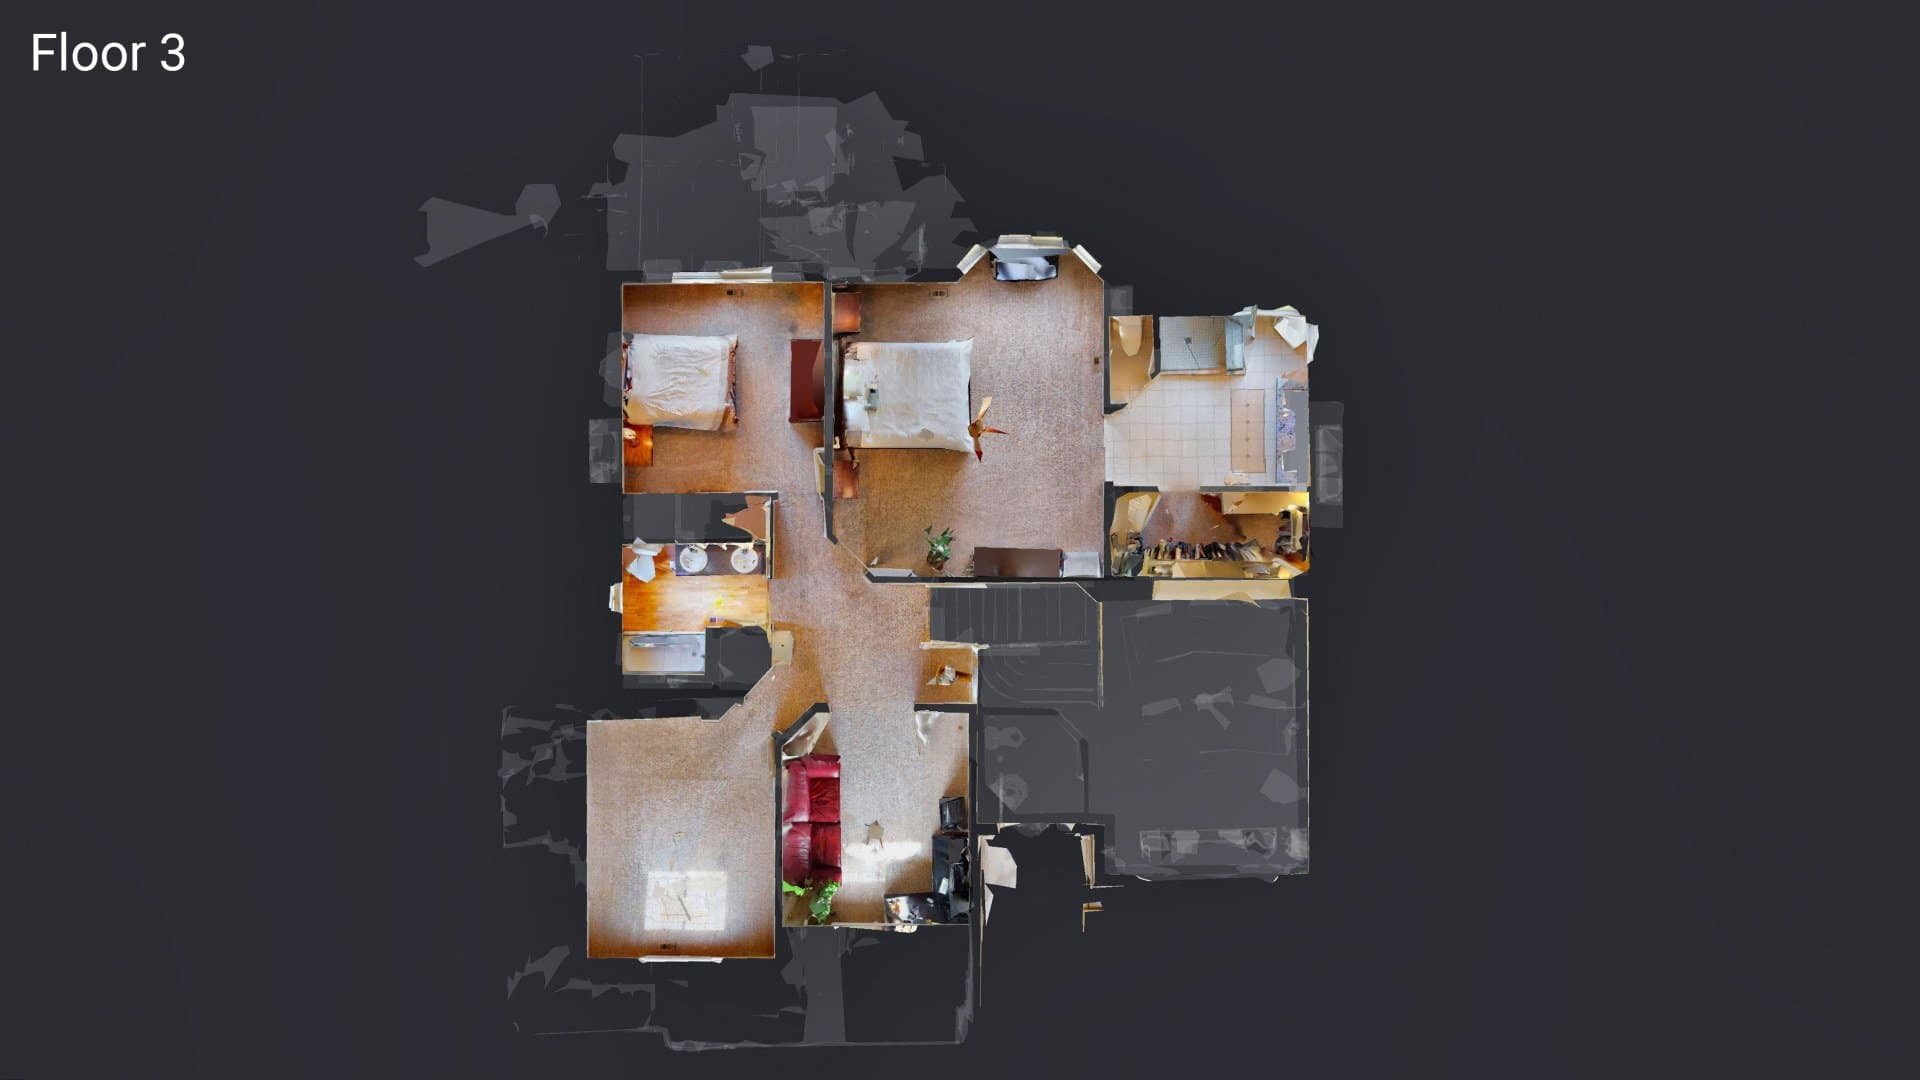 3D Floor Plan of Upper Floor